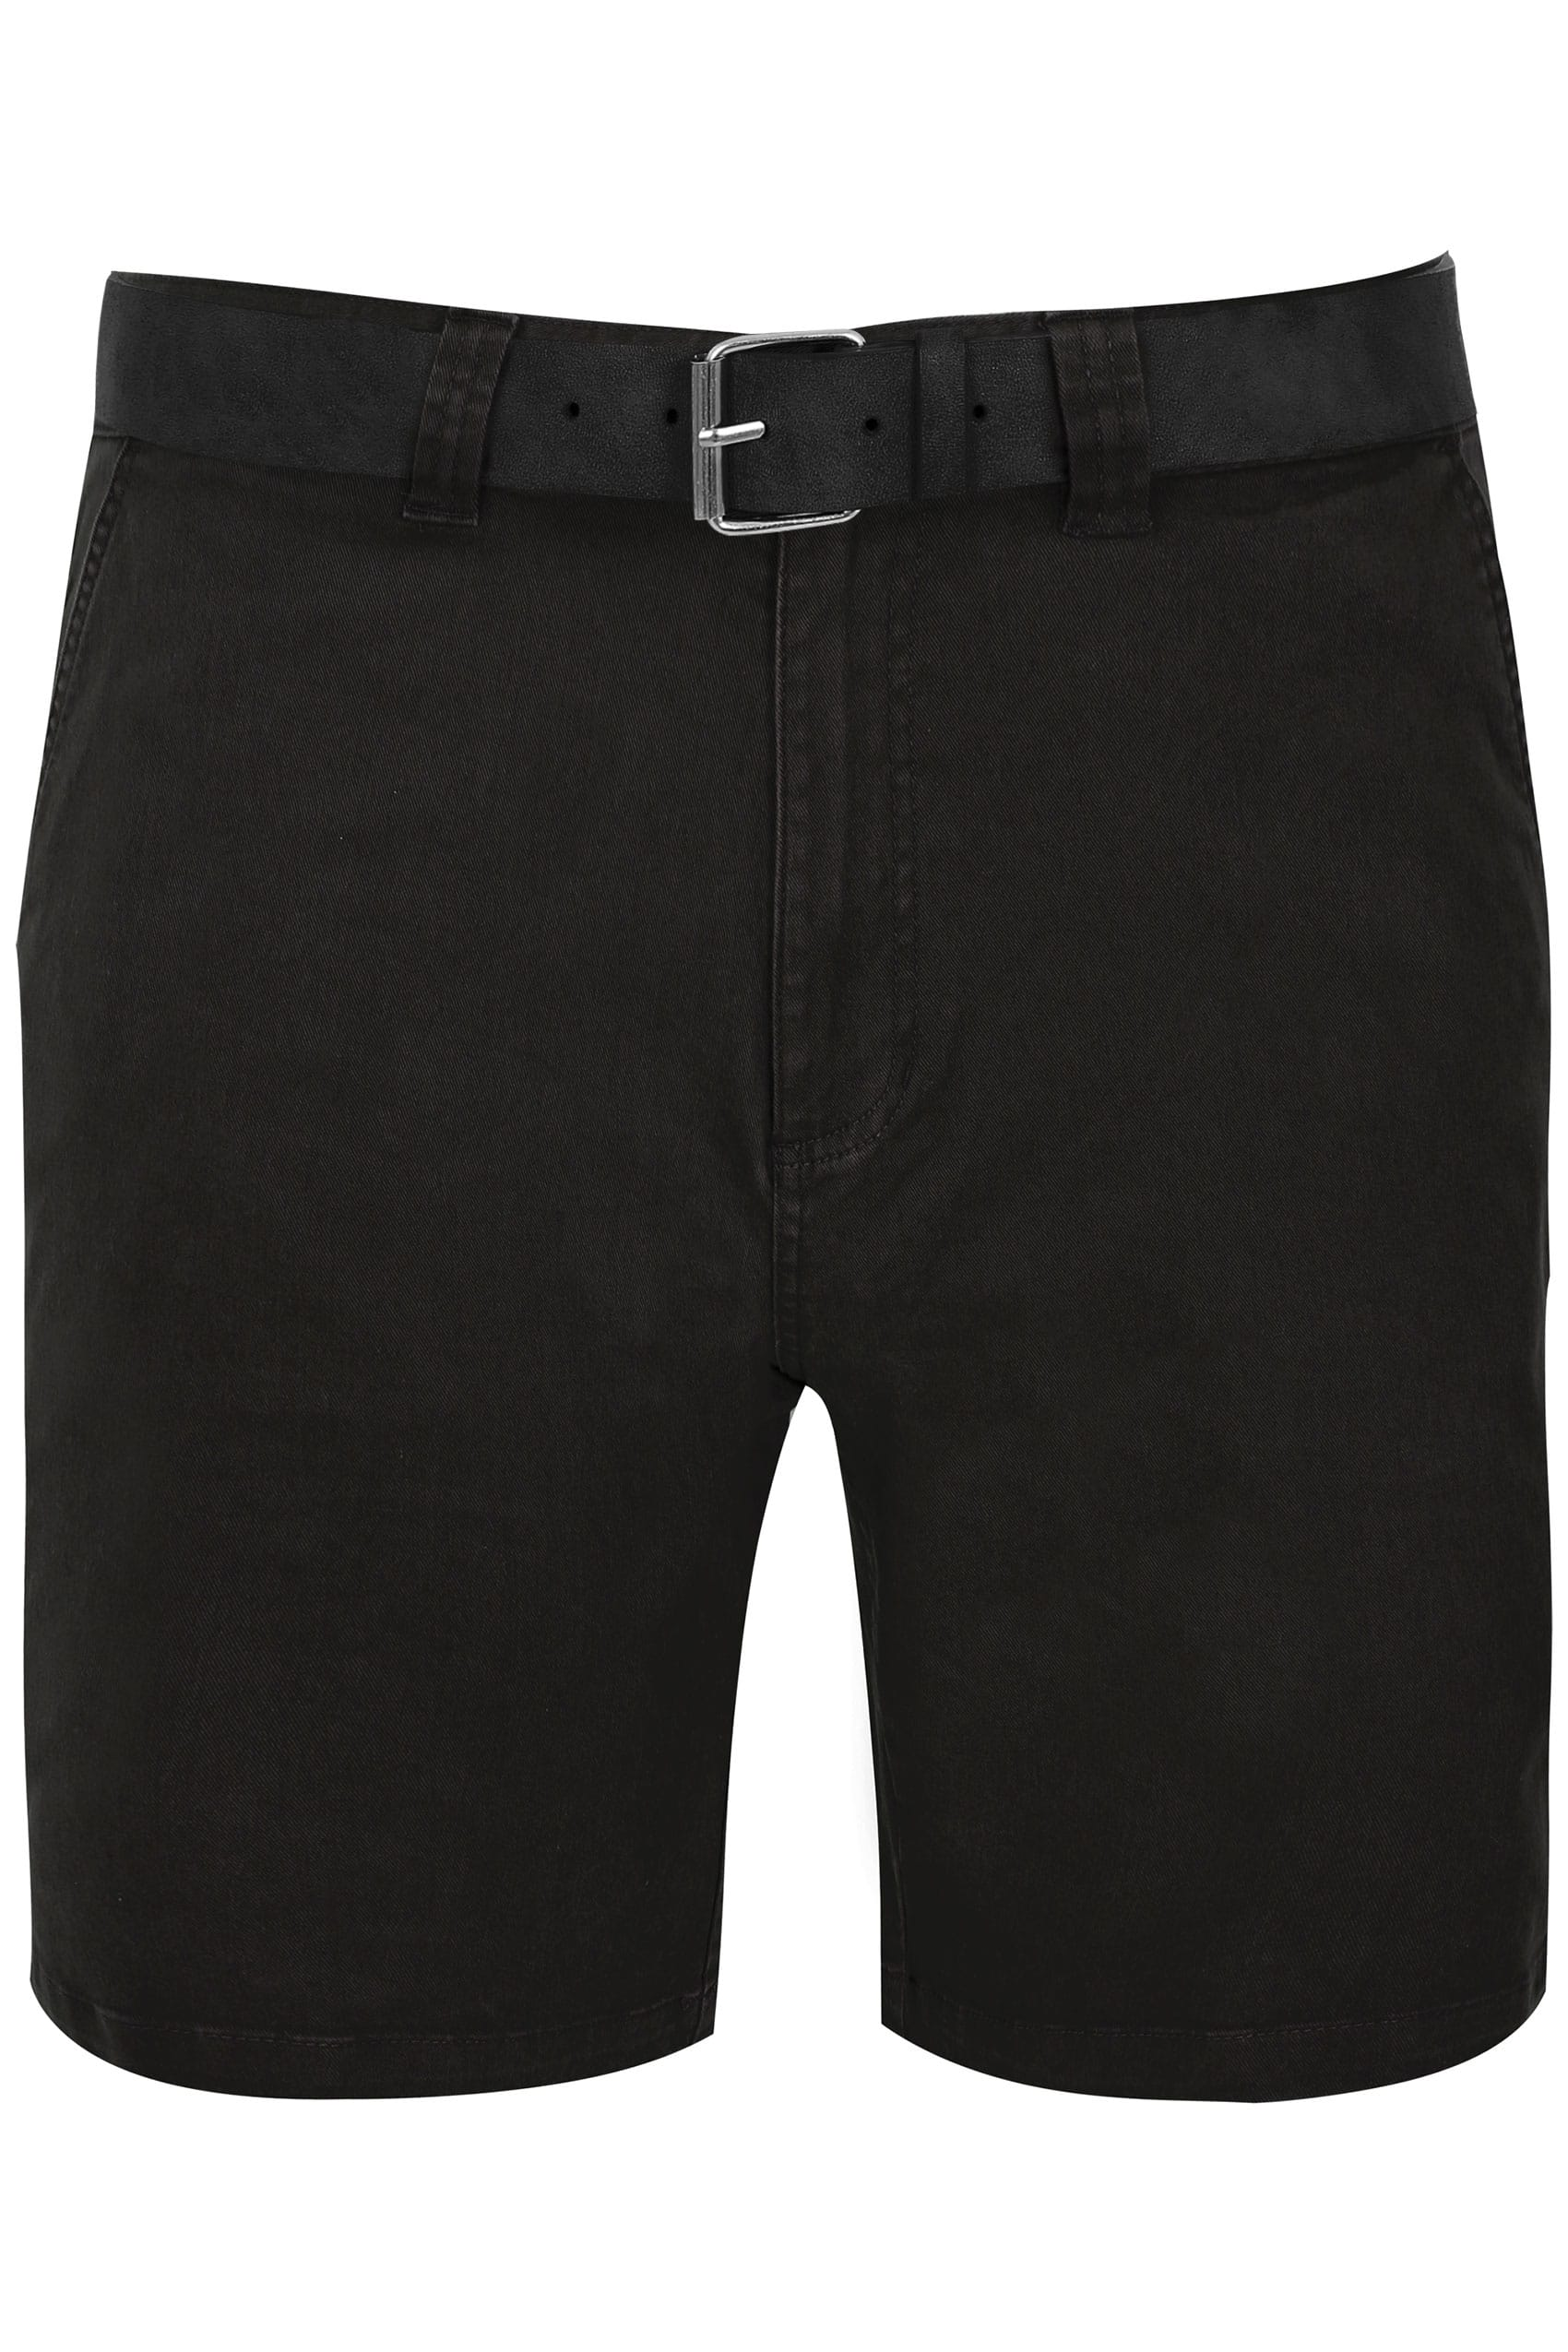 BadRhino Black Five Pocket Chino Shorts With Belt